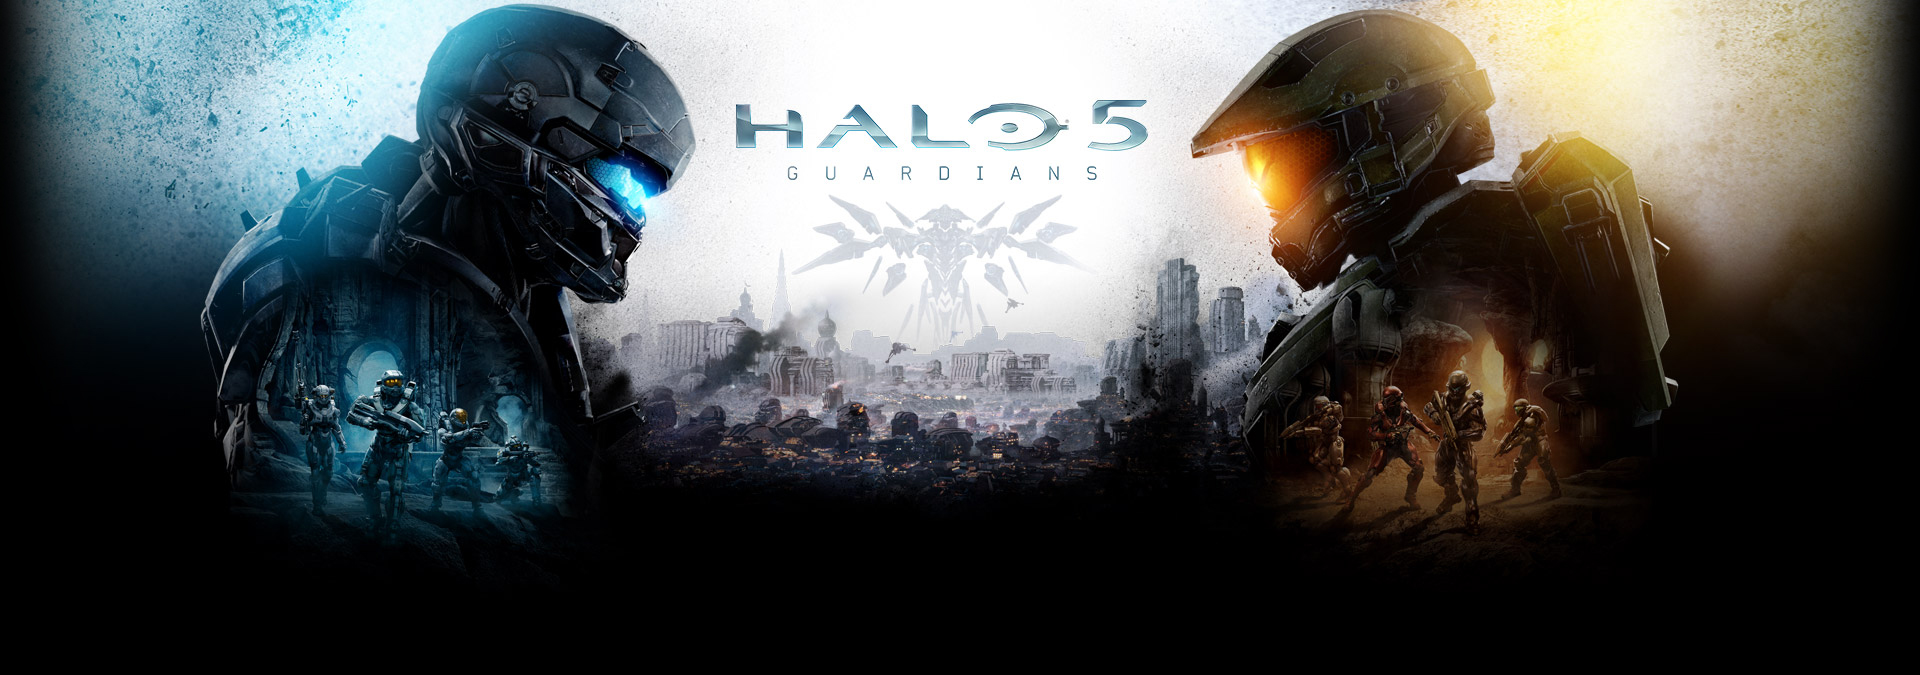 xbox 360 halo 3 release date